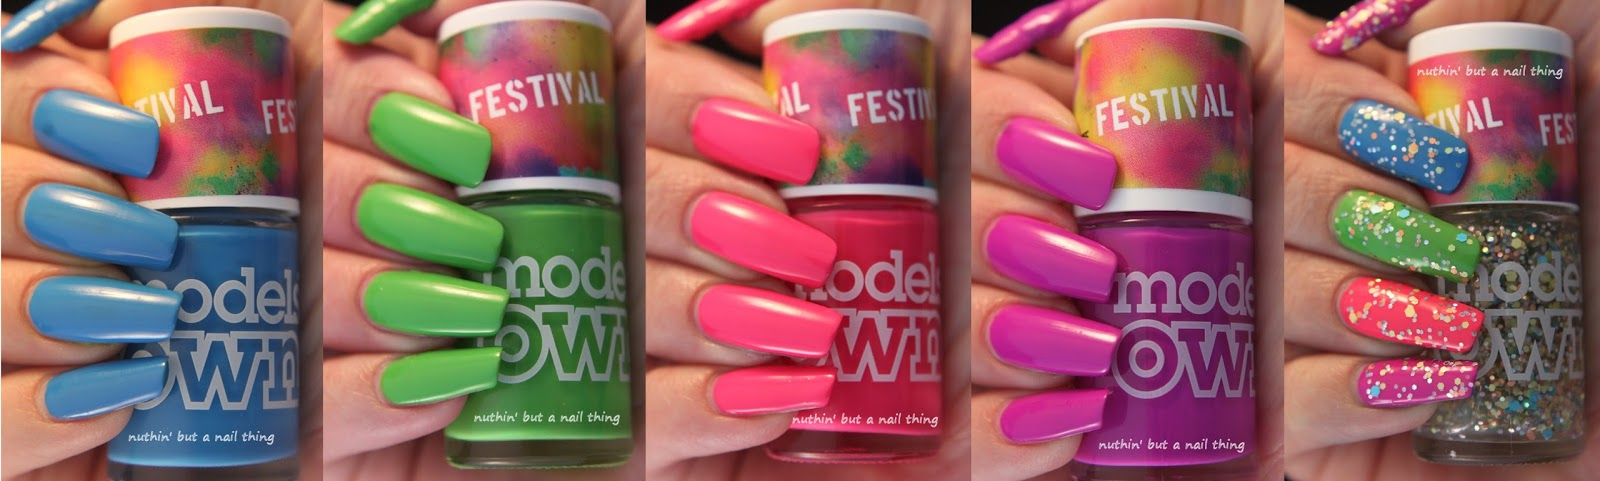 Models Own Festival Collection Swatches